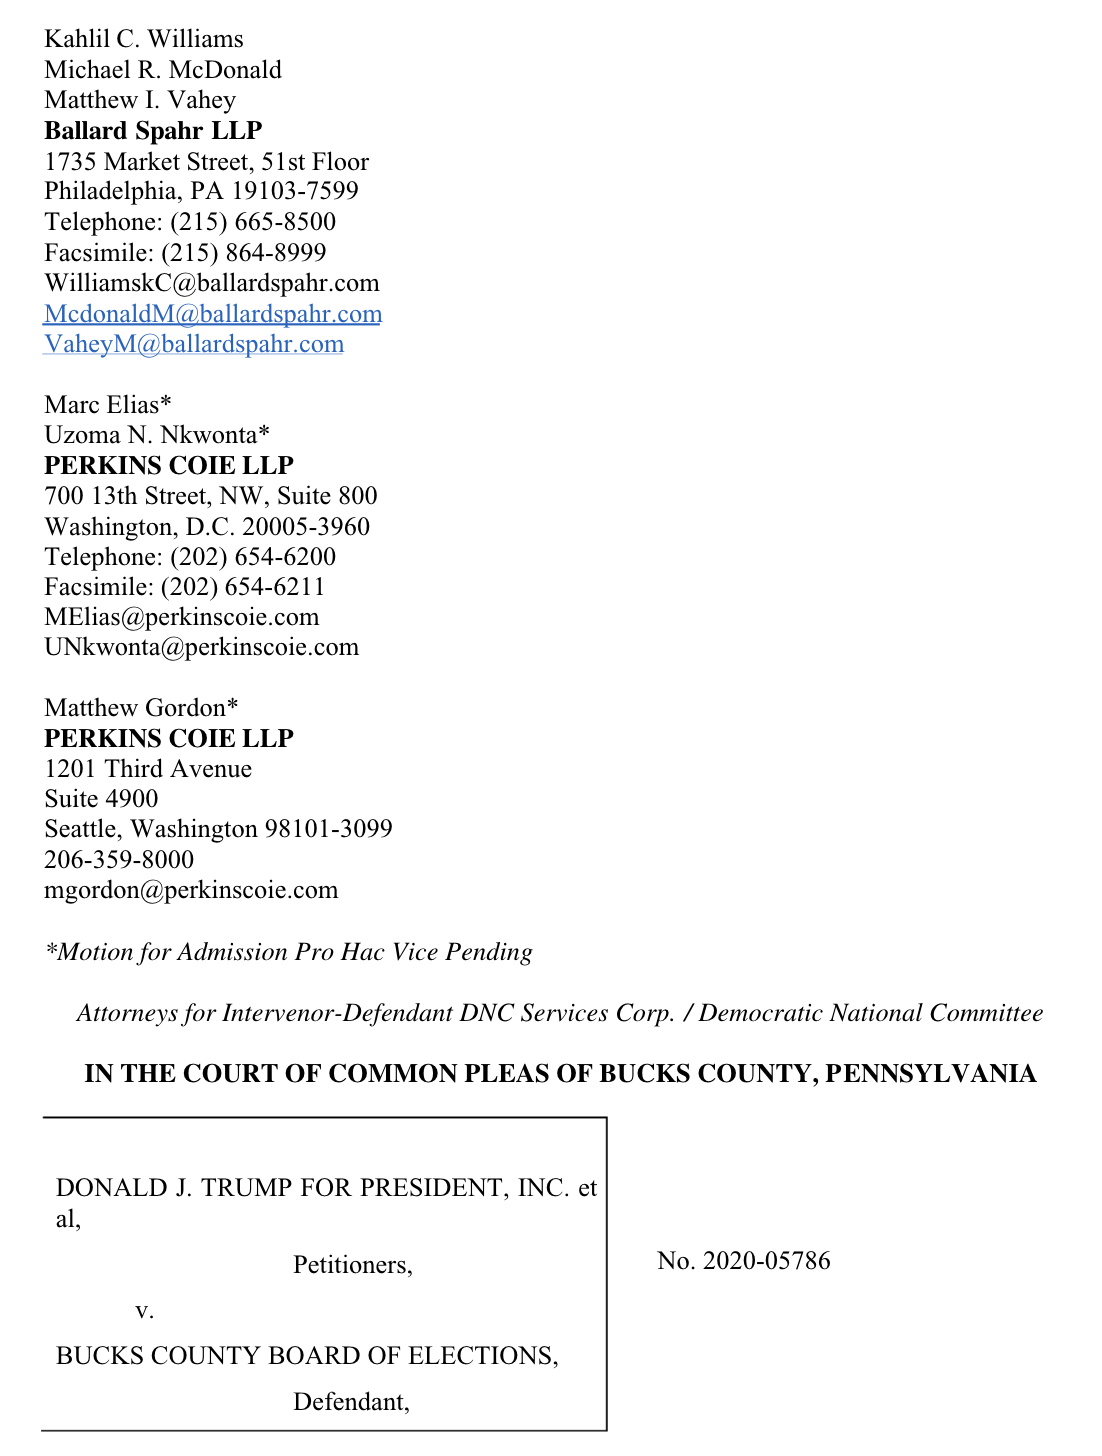 Screen-Shot-2020-11-19-at-8.12.05-AM GOP Lawyer Forced To Publicly Admit There Was No Fraud Donald Trump Featured Mental Illness Politics Top Stories